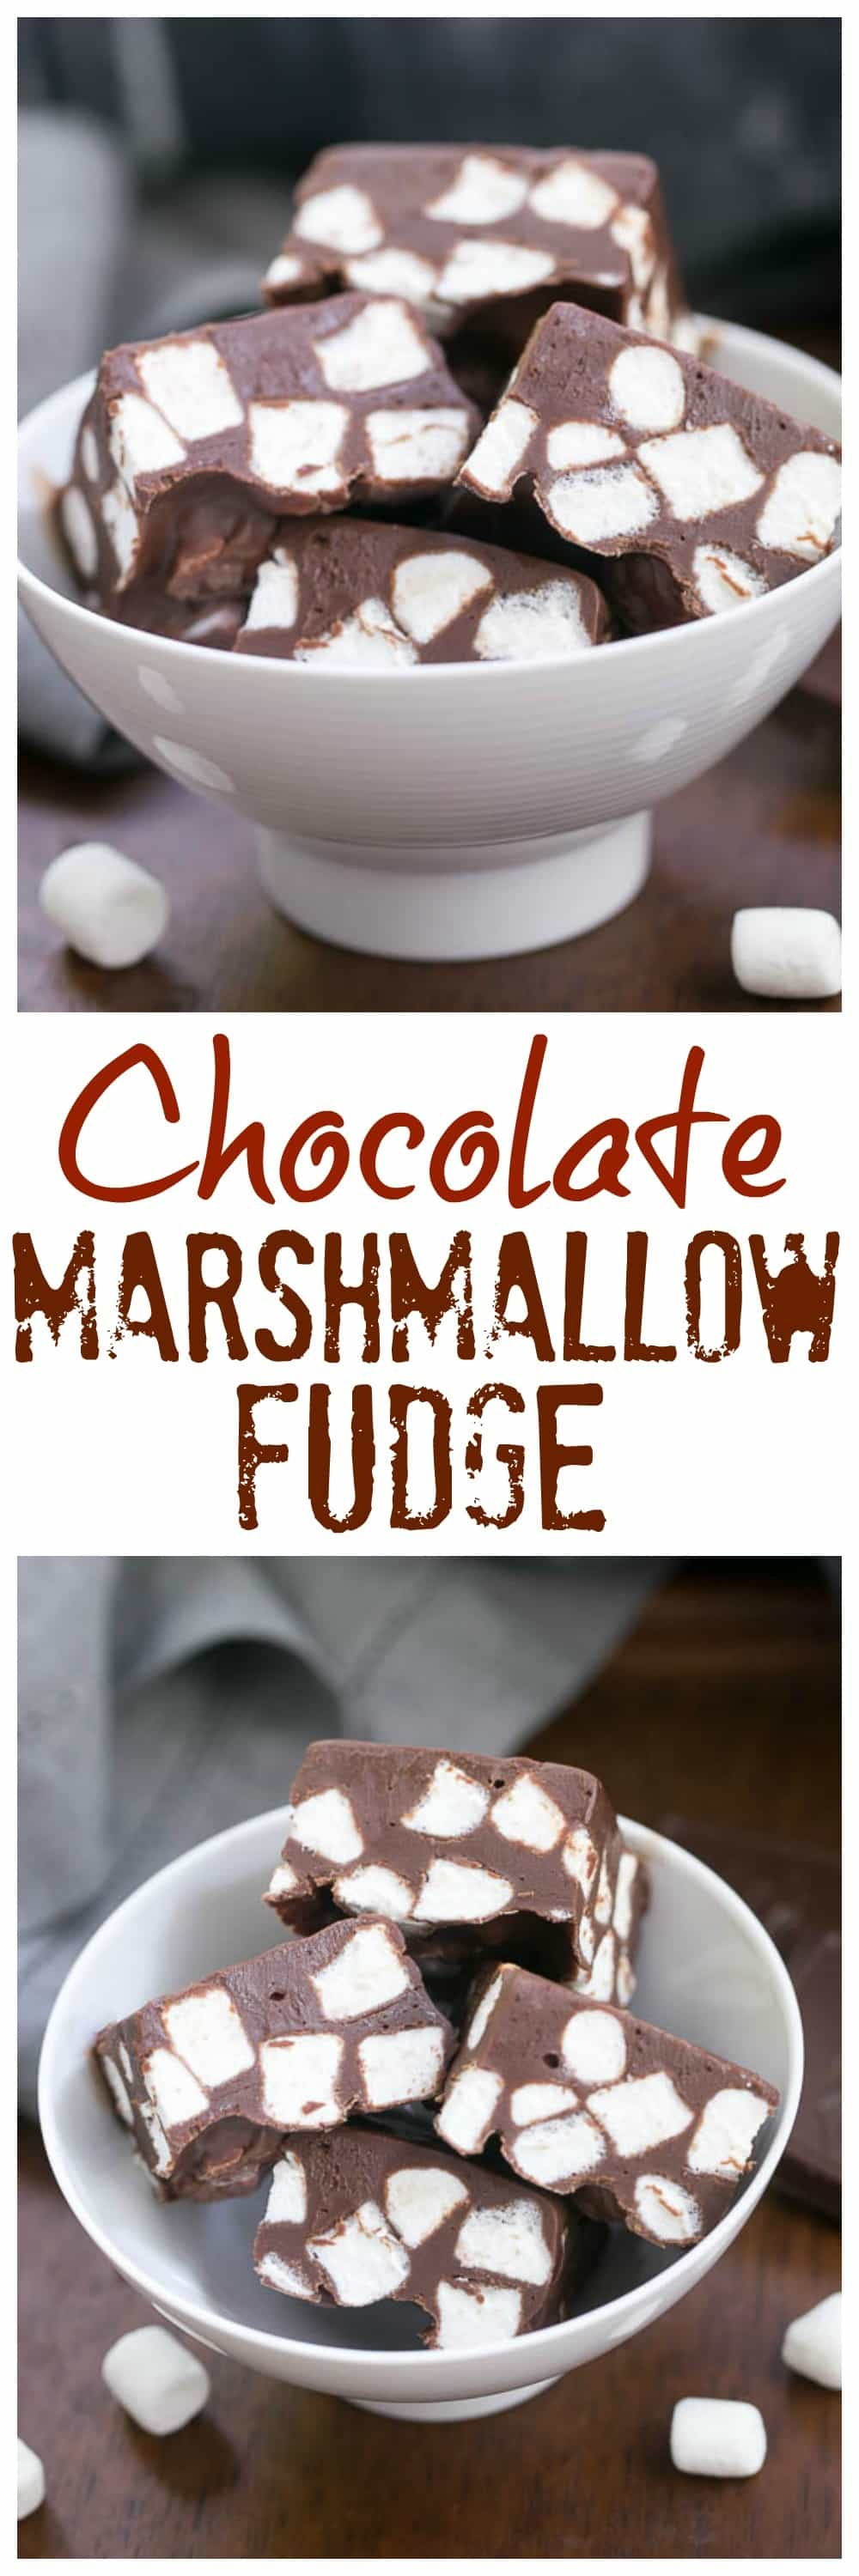 Chocolate Marshmallow Fudge - Only 3 ingredients and a few minutes to have a batch of super rich, delicious fudge! #fudge #easyrecipe #marshmallows